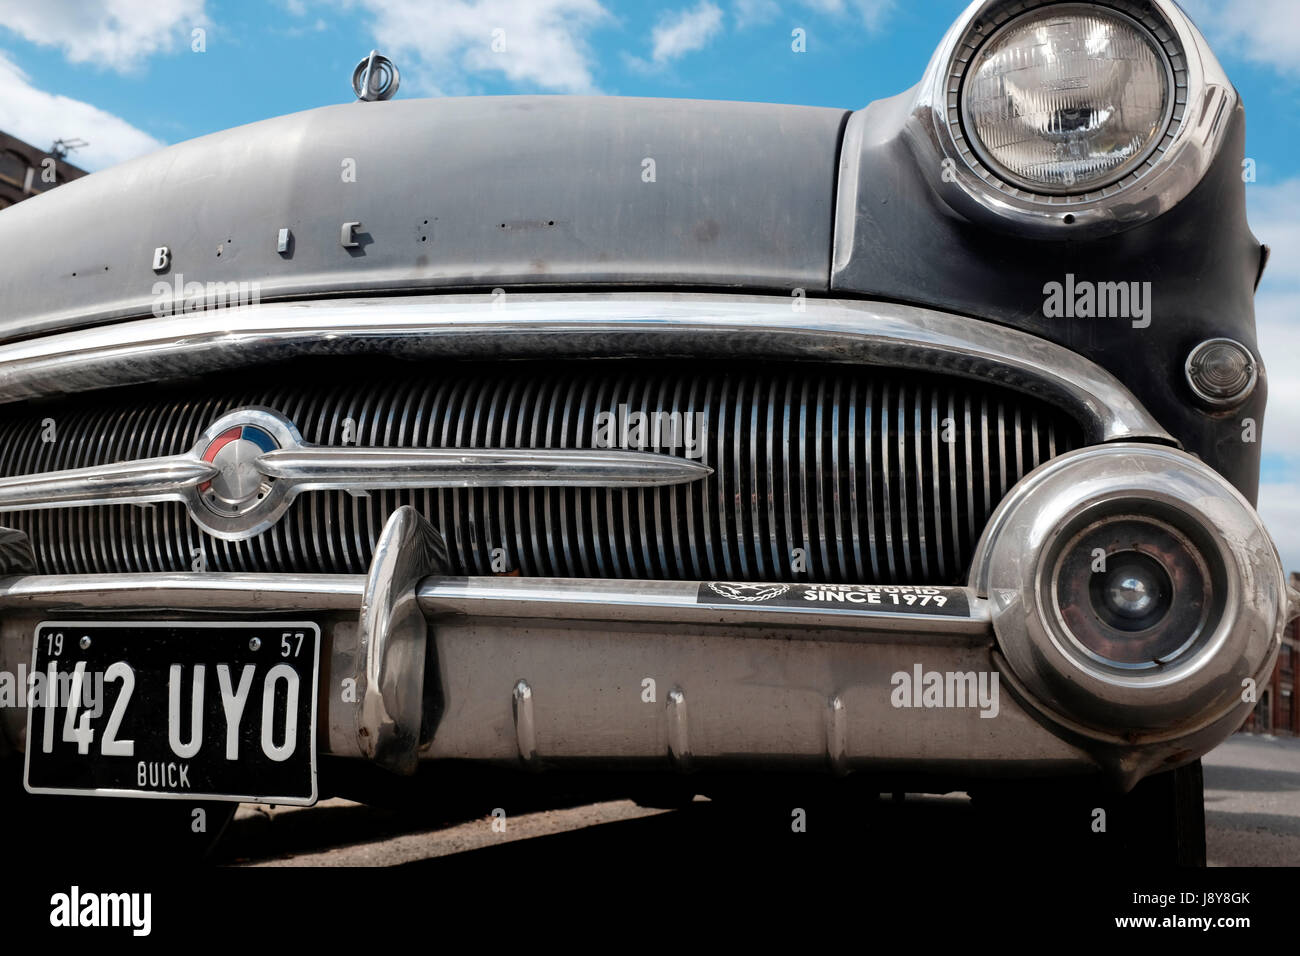 A rustic looking 1957 Buick automobile with missing letters in the name. London, England UK. - Stock Image